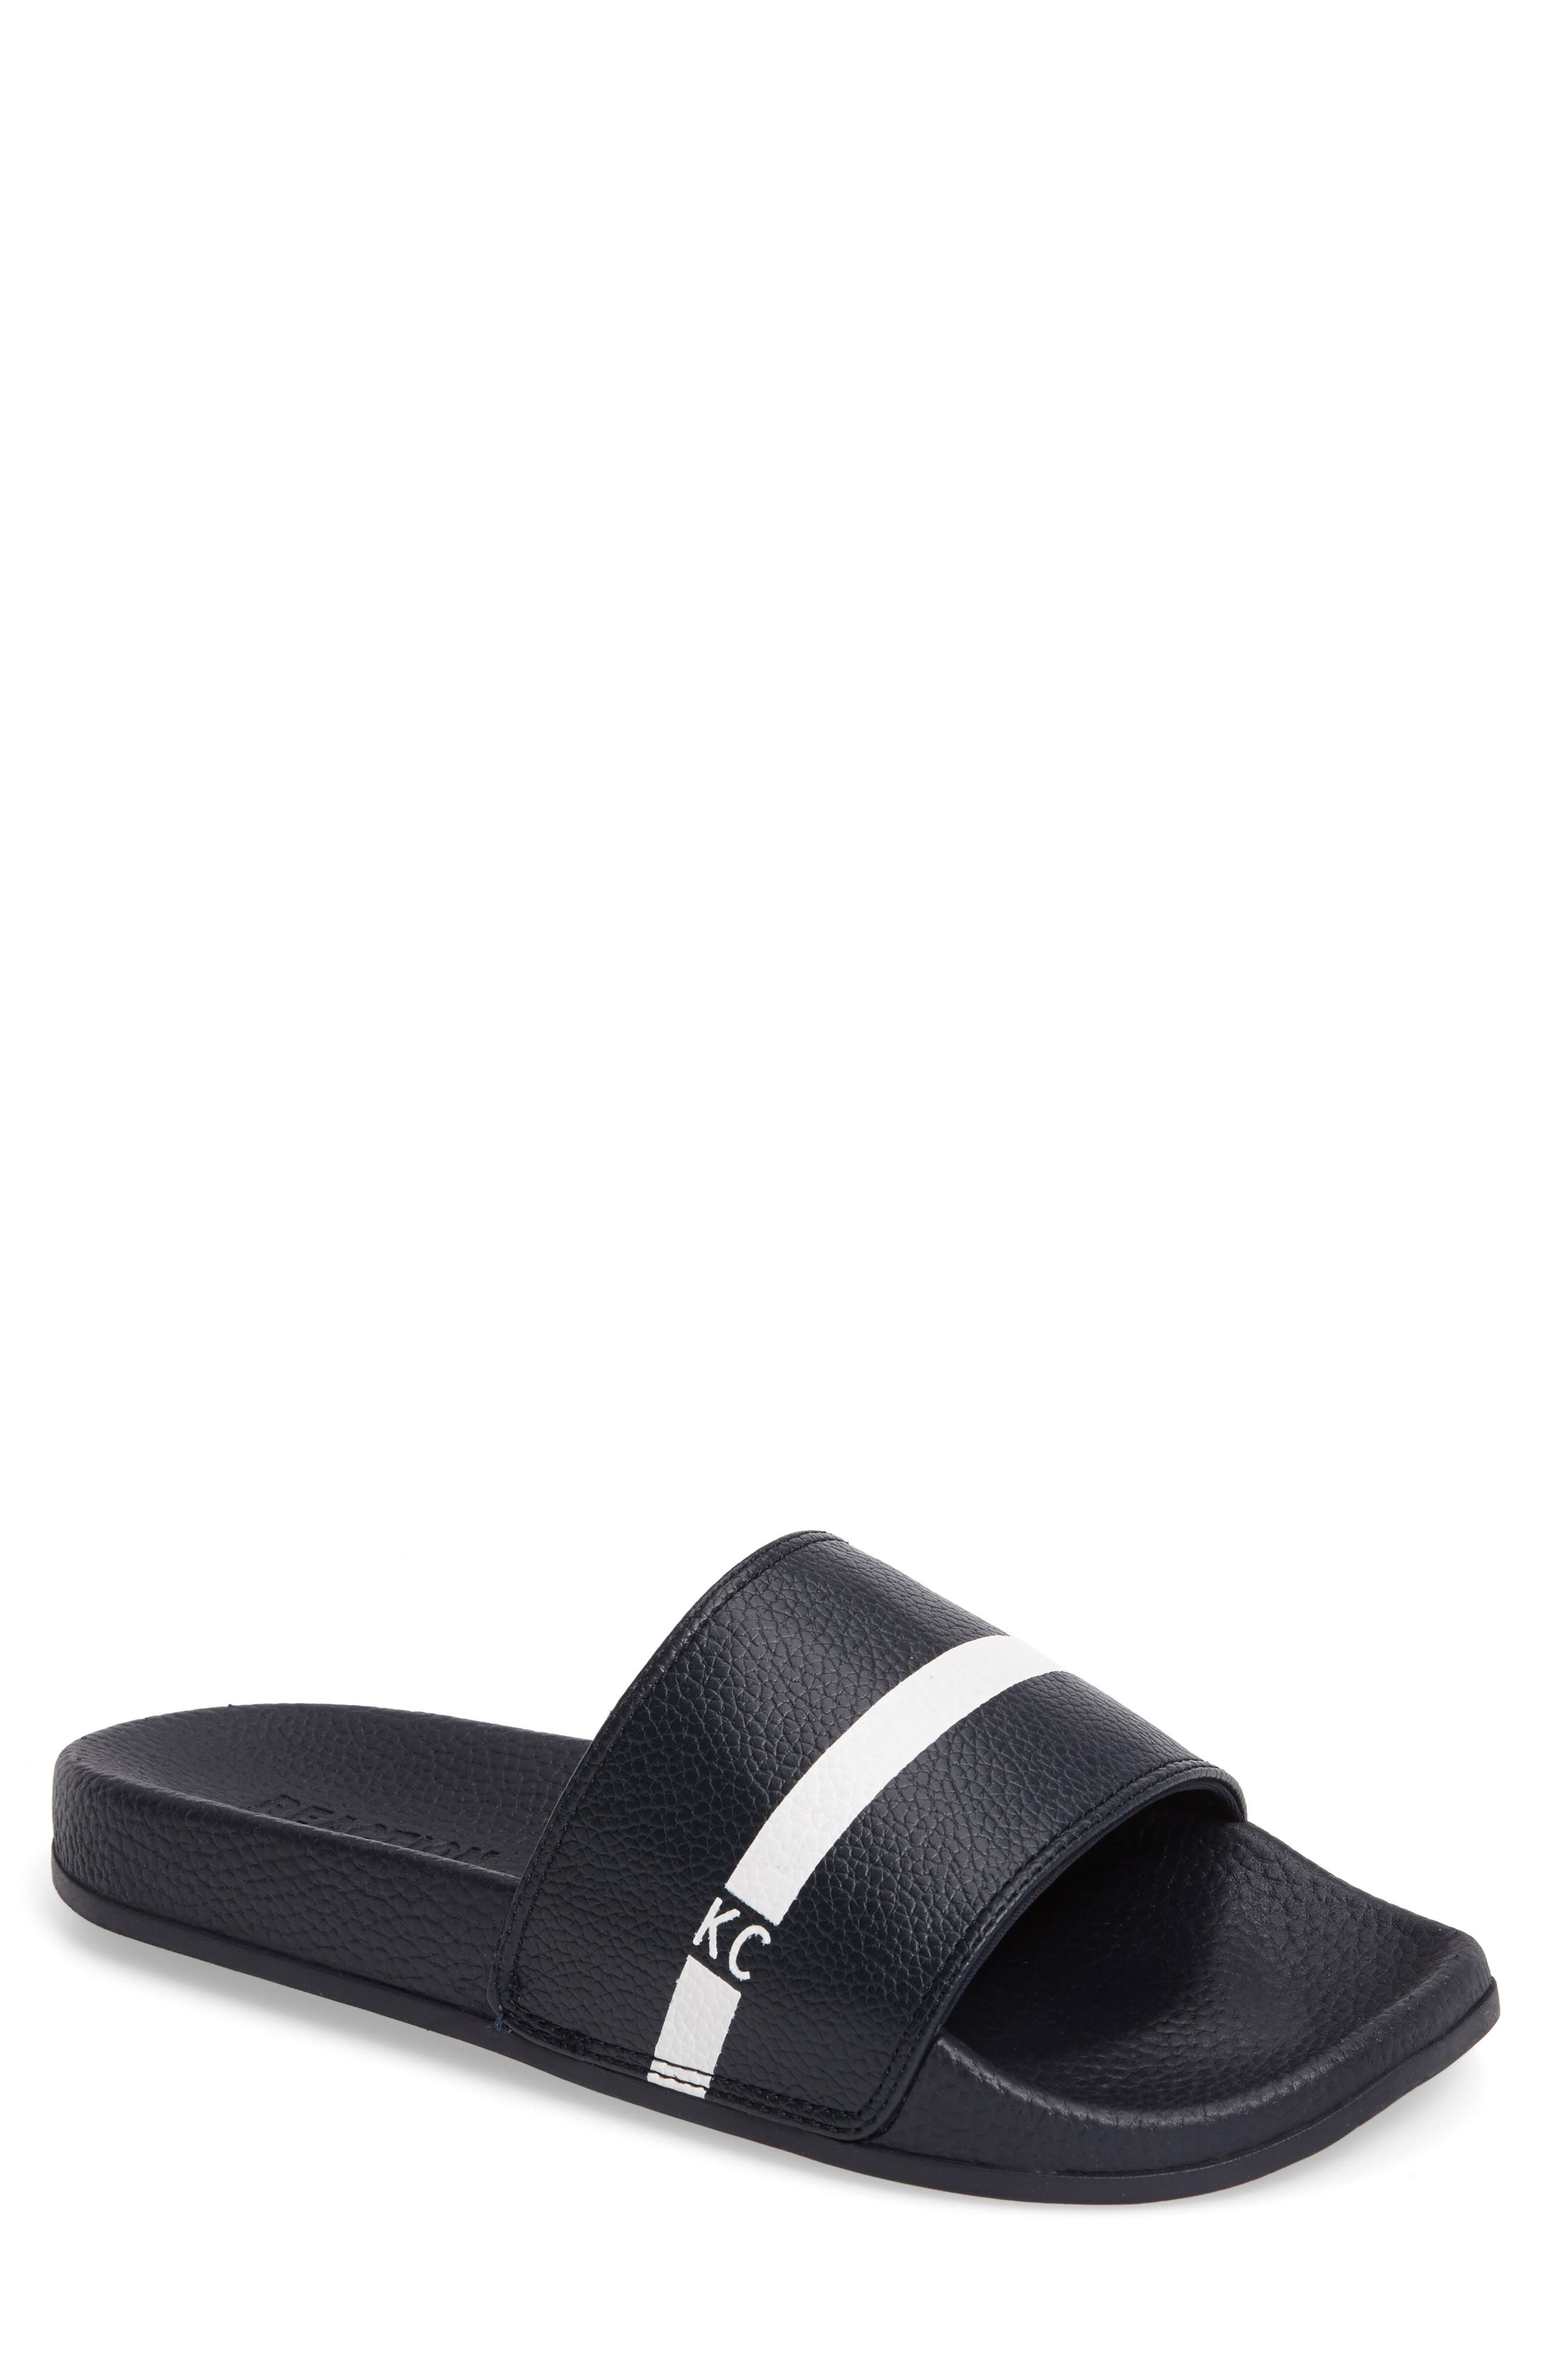 Reaction Kenneth Cole Big Screen Slide Sandal (Men)